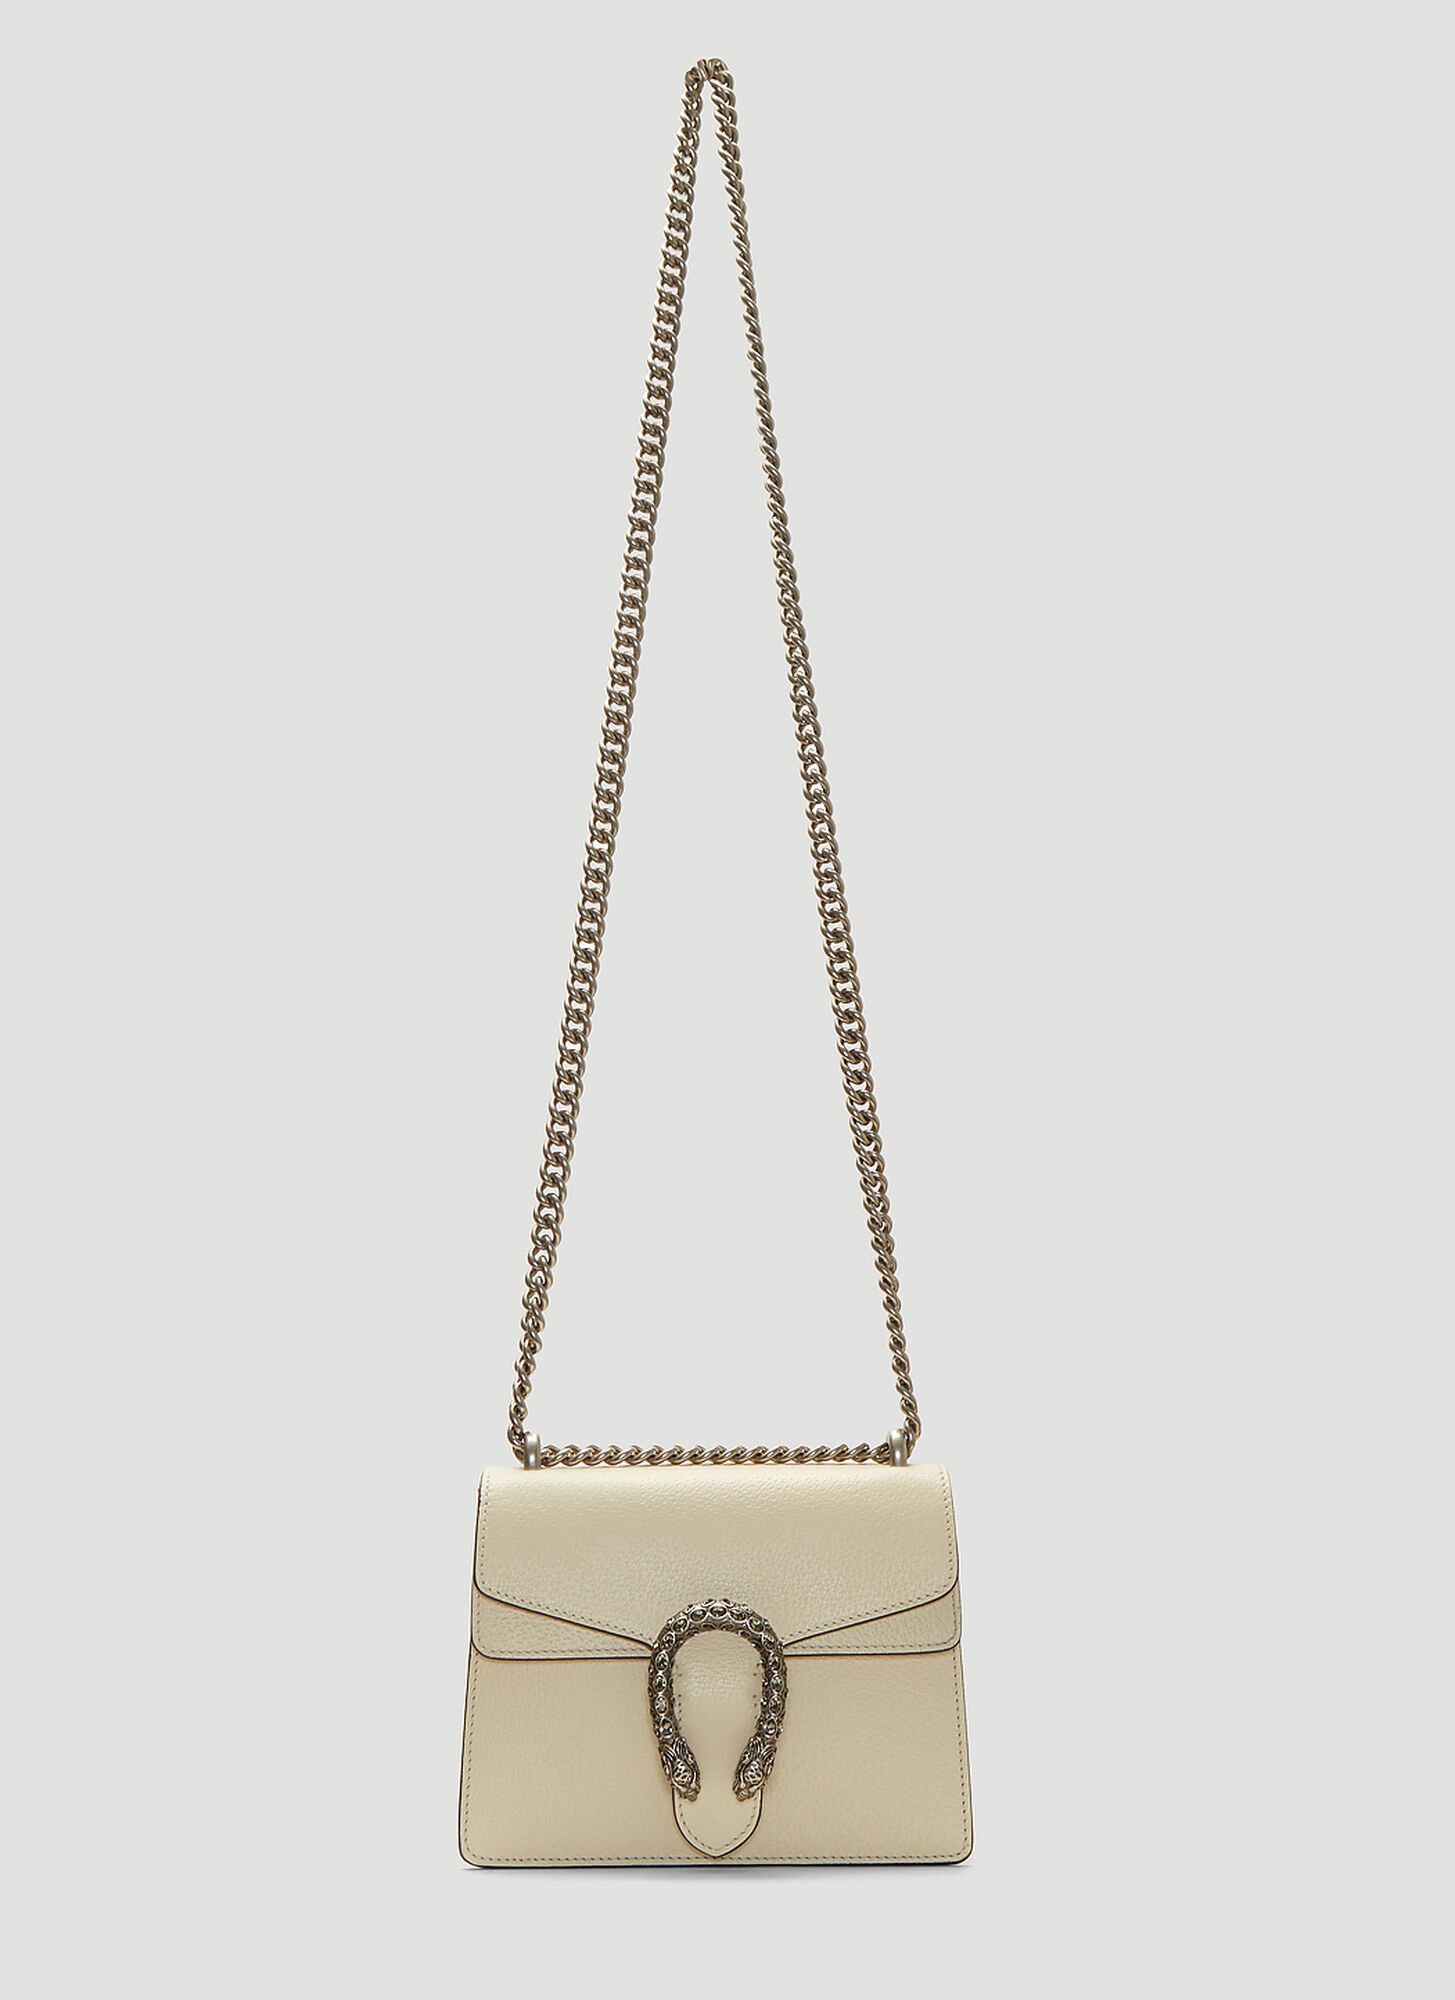 Gucci Dionysus Shoulder Bag in Beige